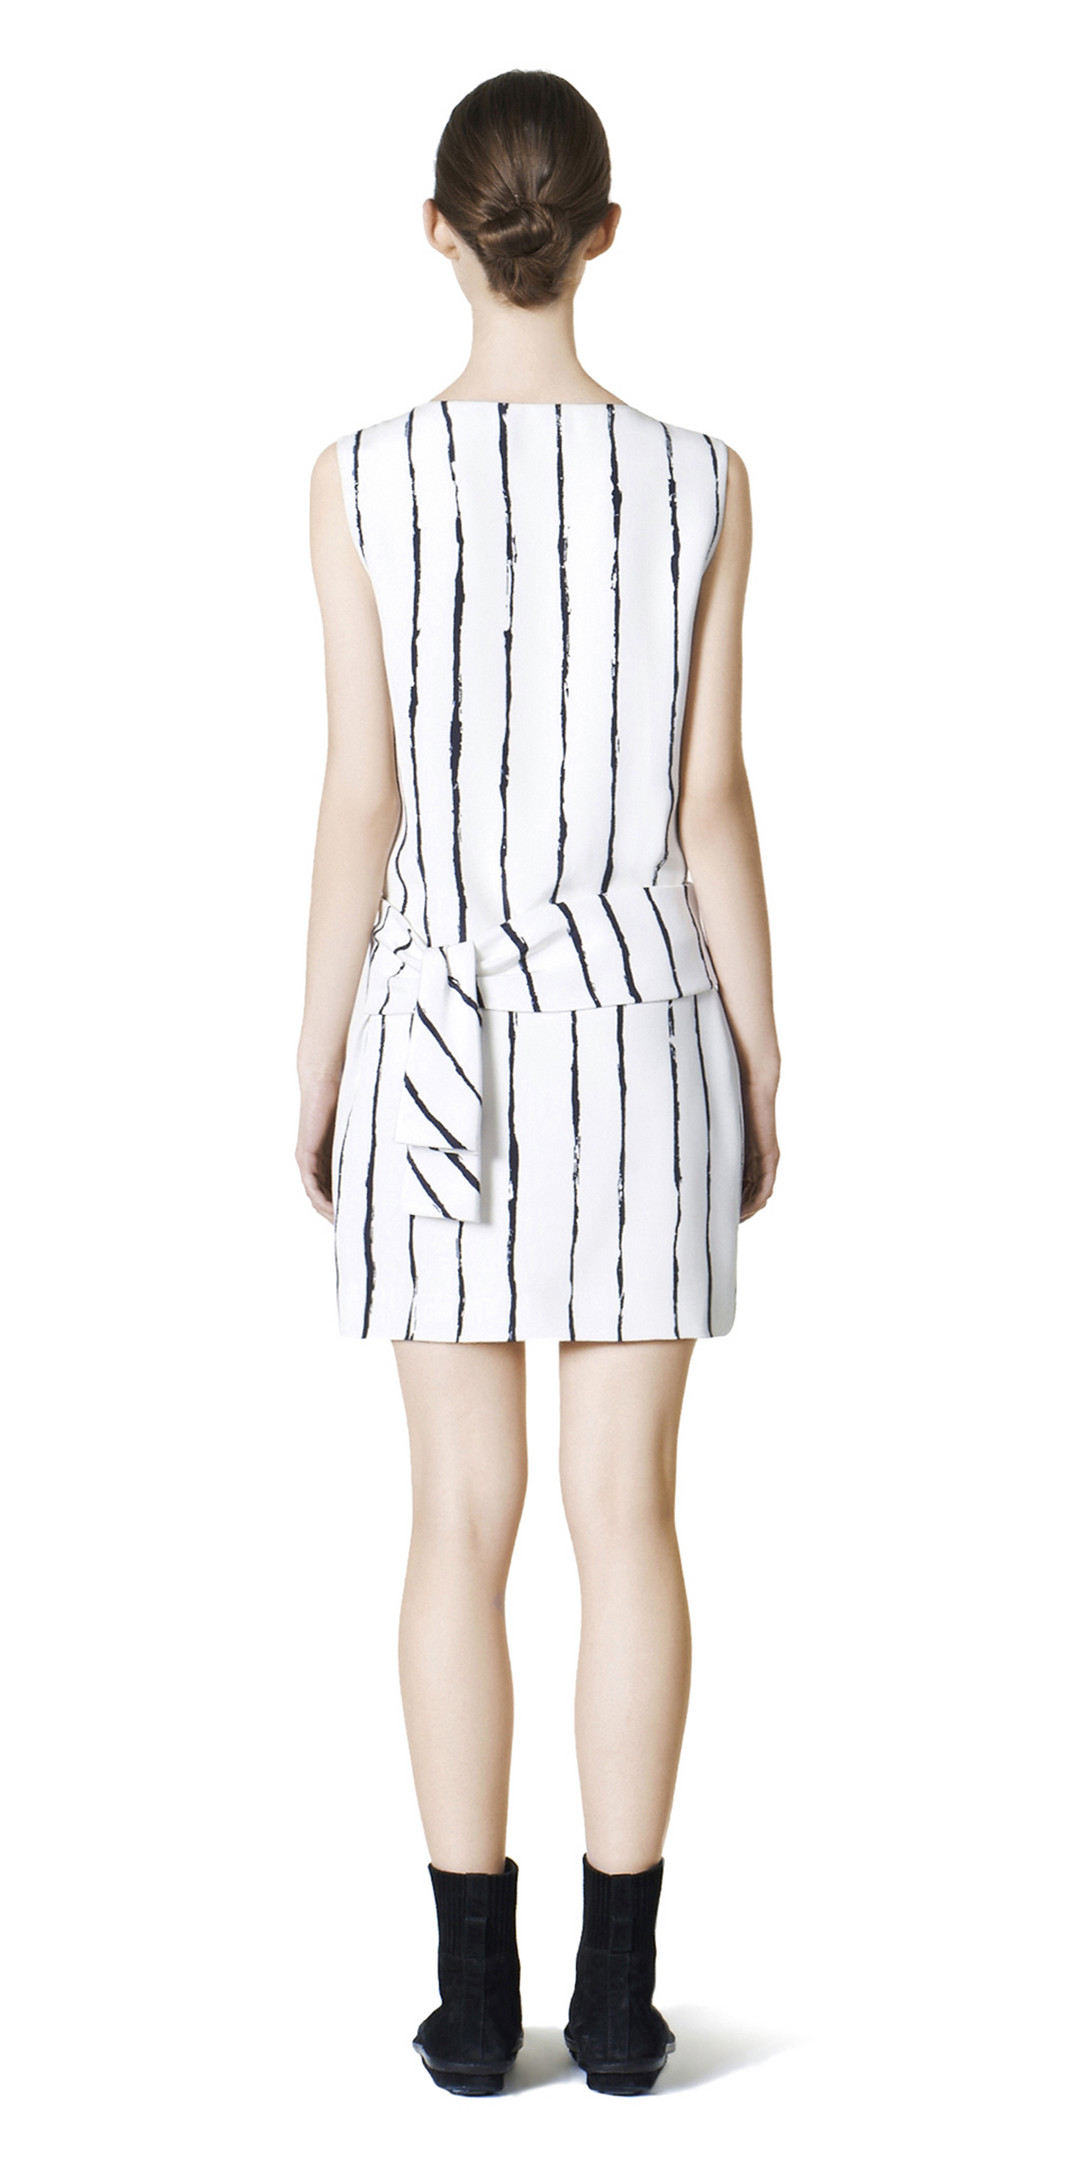 BALENCIAGA Dress D Balenciaga Edition Stripes Drapy Dress i